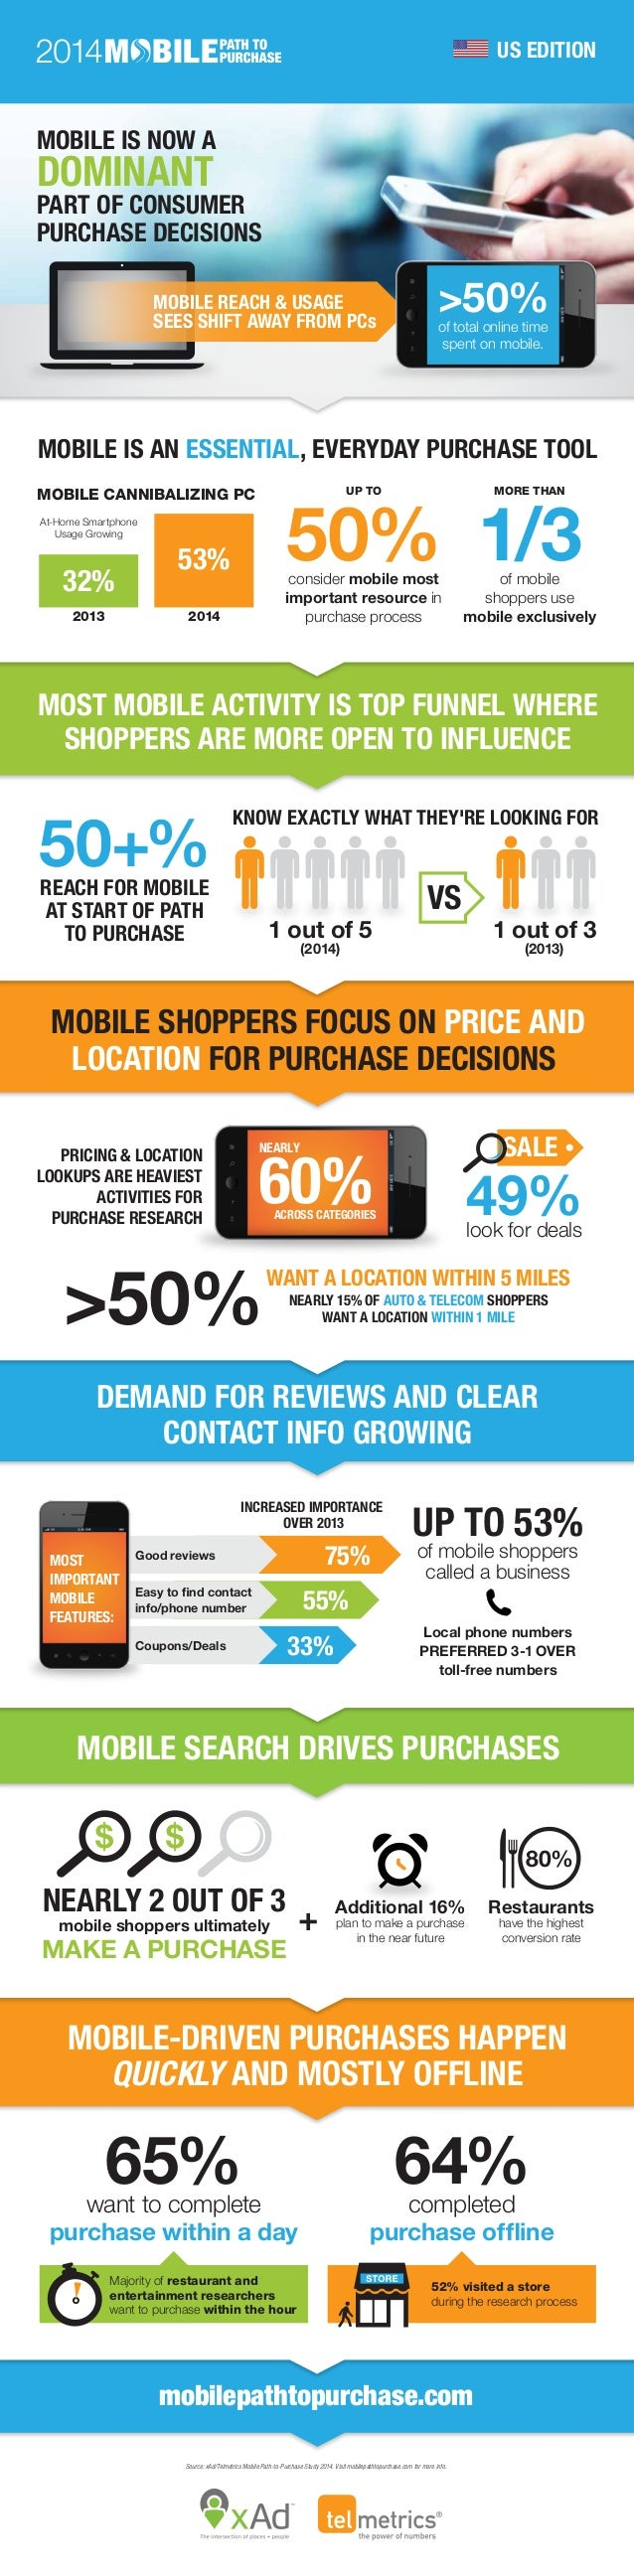 mobilepathtopurchase.com MOBILE SEARCH DRIVES PURCHASES NEARLY 2 OUT OF 3 mobile shoppers ultimately MAKE A PURCHASE Addit...